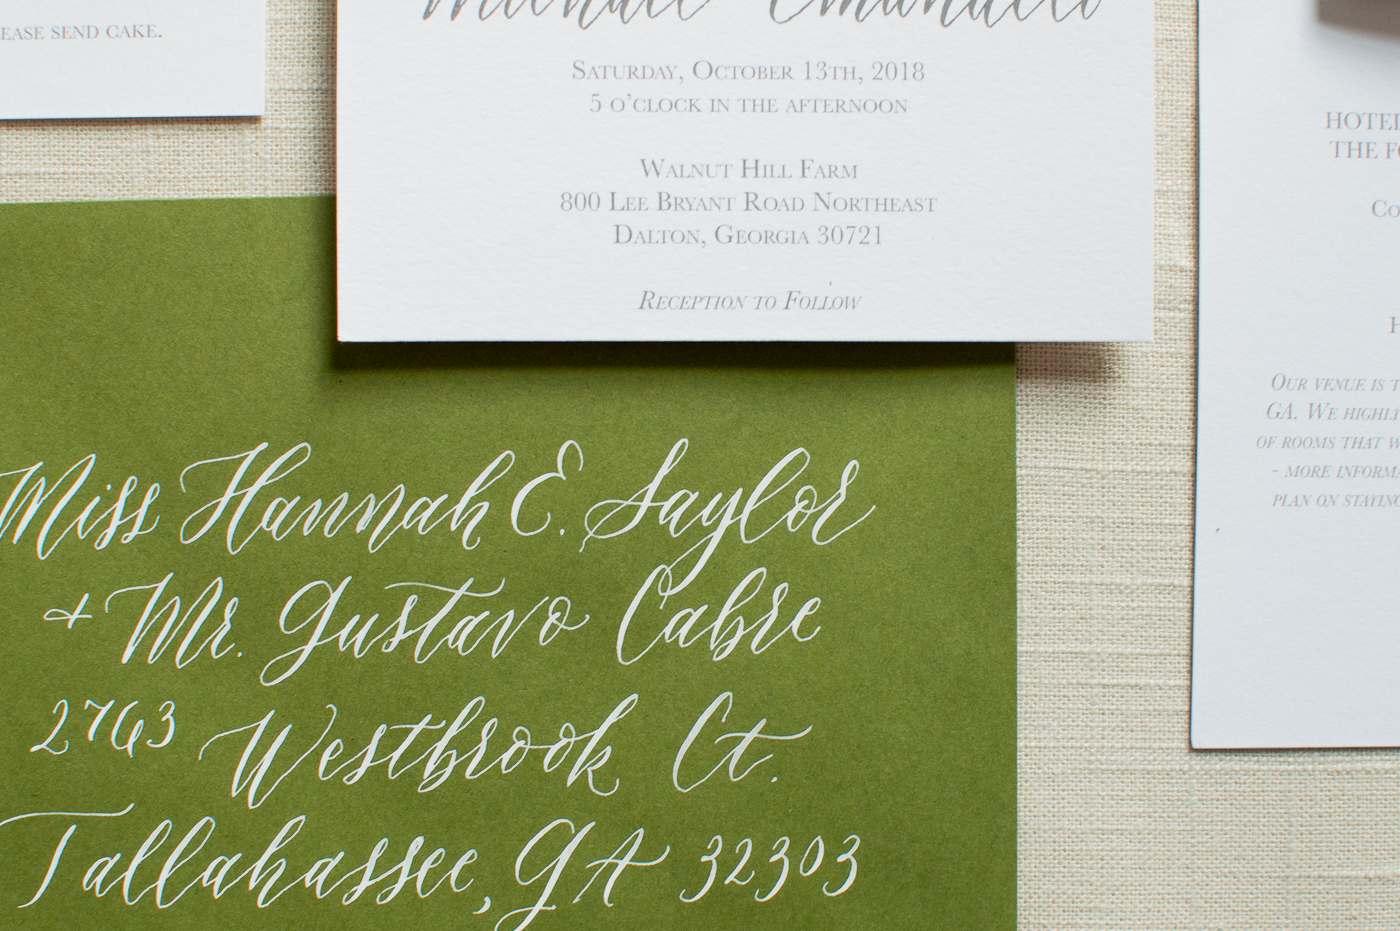 Our guests LOVED receiving the calligraphy addressed invitations in the mail!